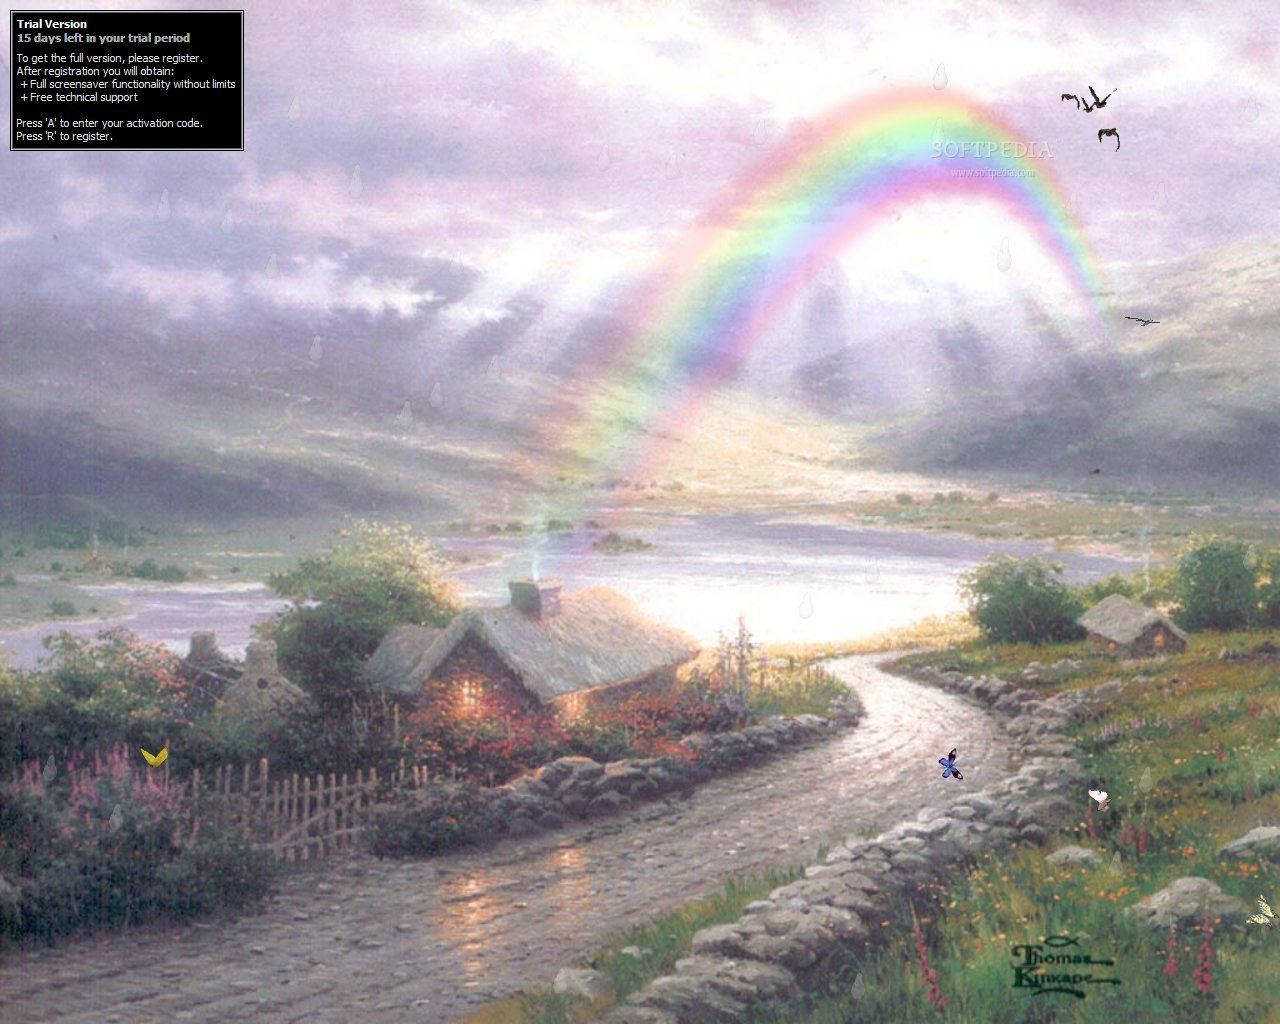 Irish Morn Screensaver   The Irish Morn Screensaver will display a 1280x1024